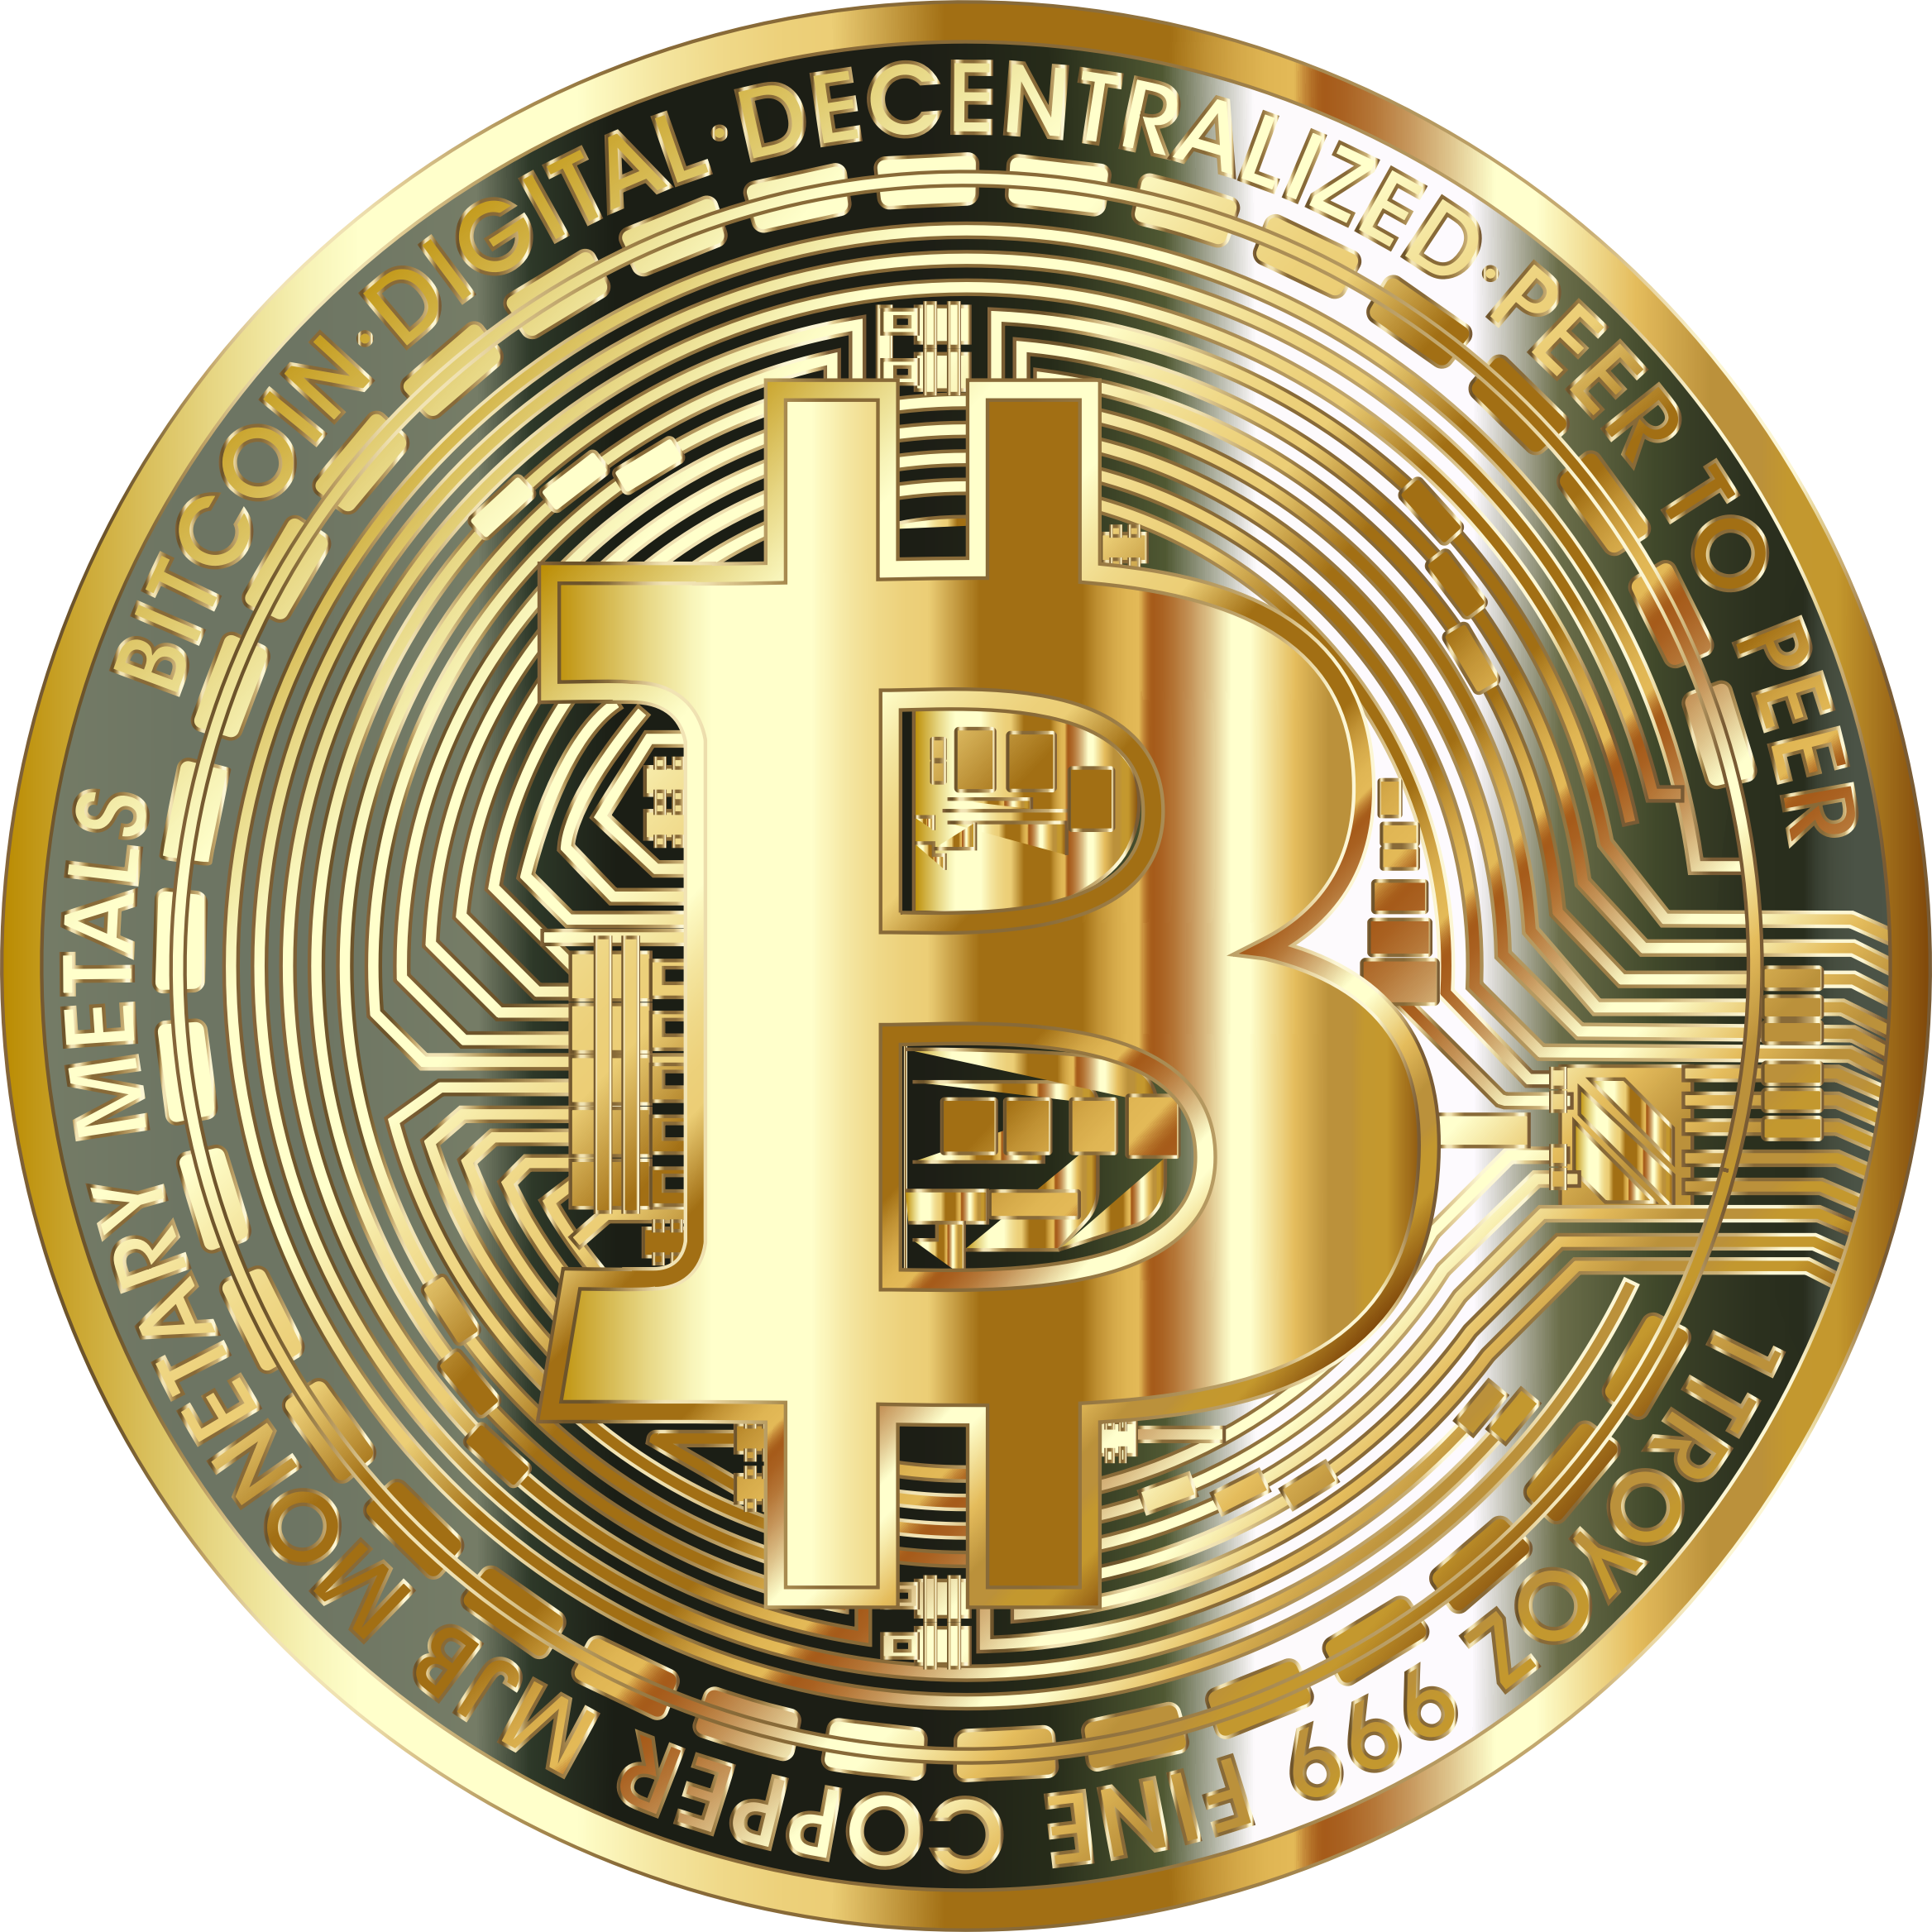 Gold Bitcoin Coin based on a design from Pixabay.